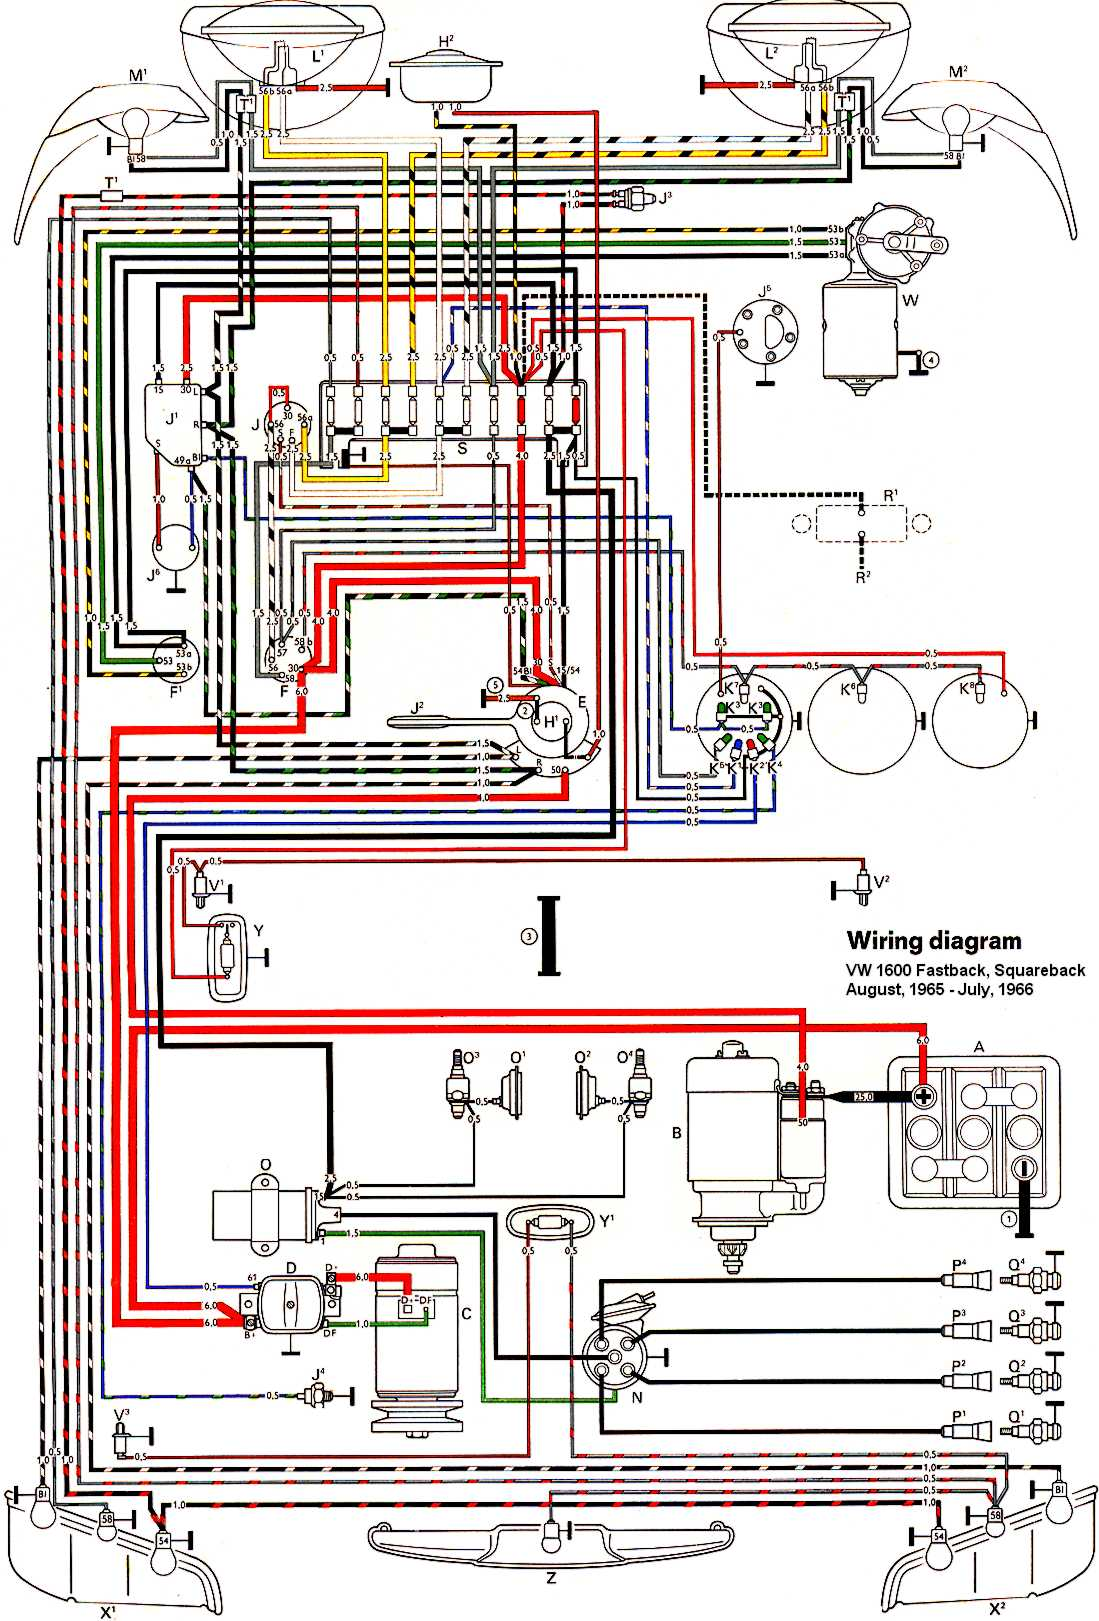 type3_1600_66 vw thing wiring diagram 1974 beetle heater diagram \u2022 wiring 1971 vw bus wiring diagram at nearapp.co